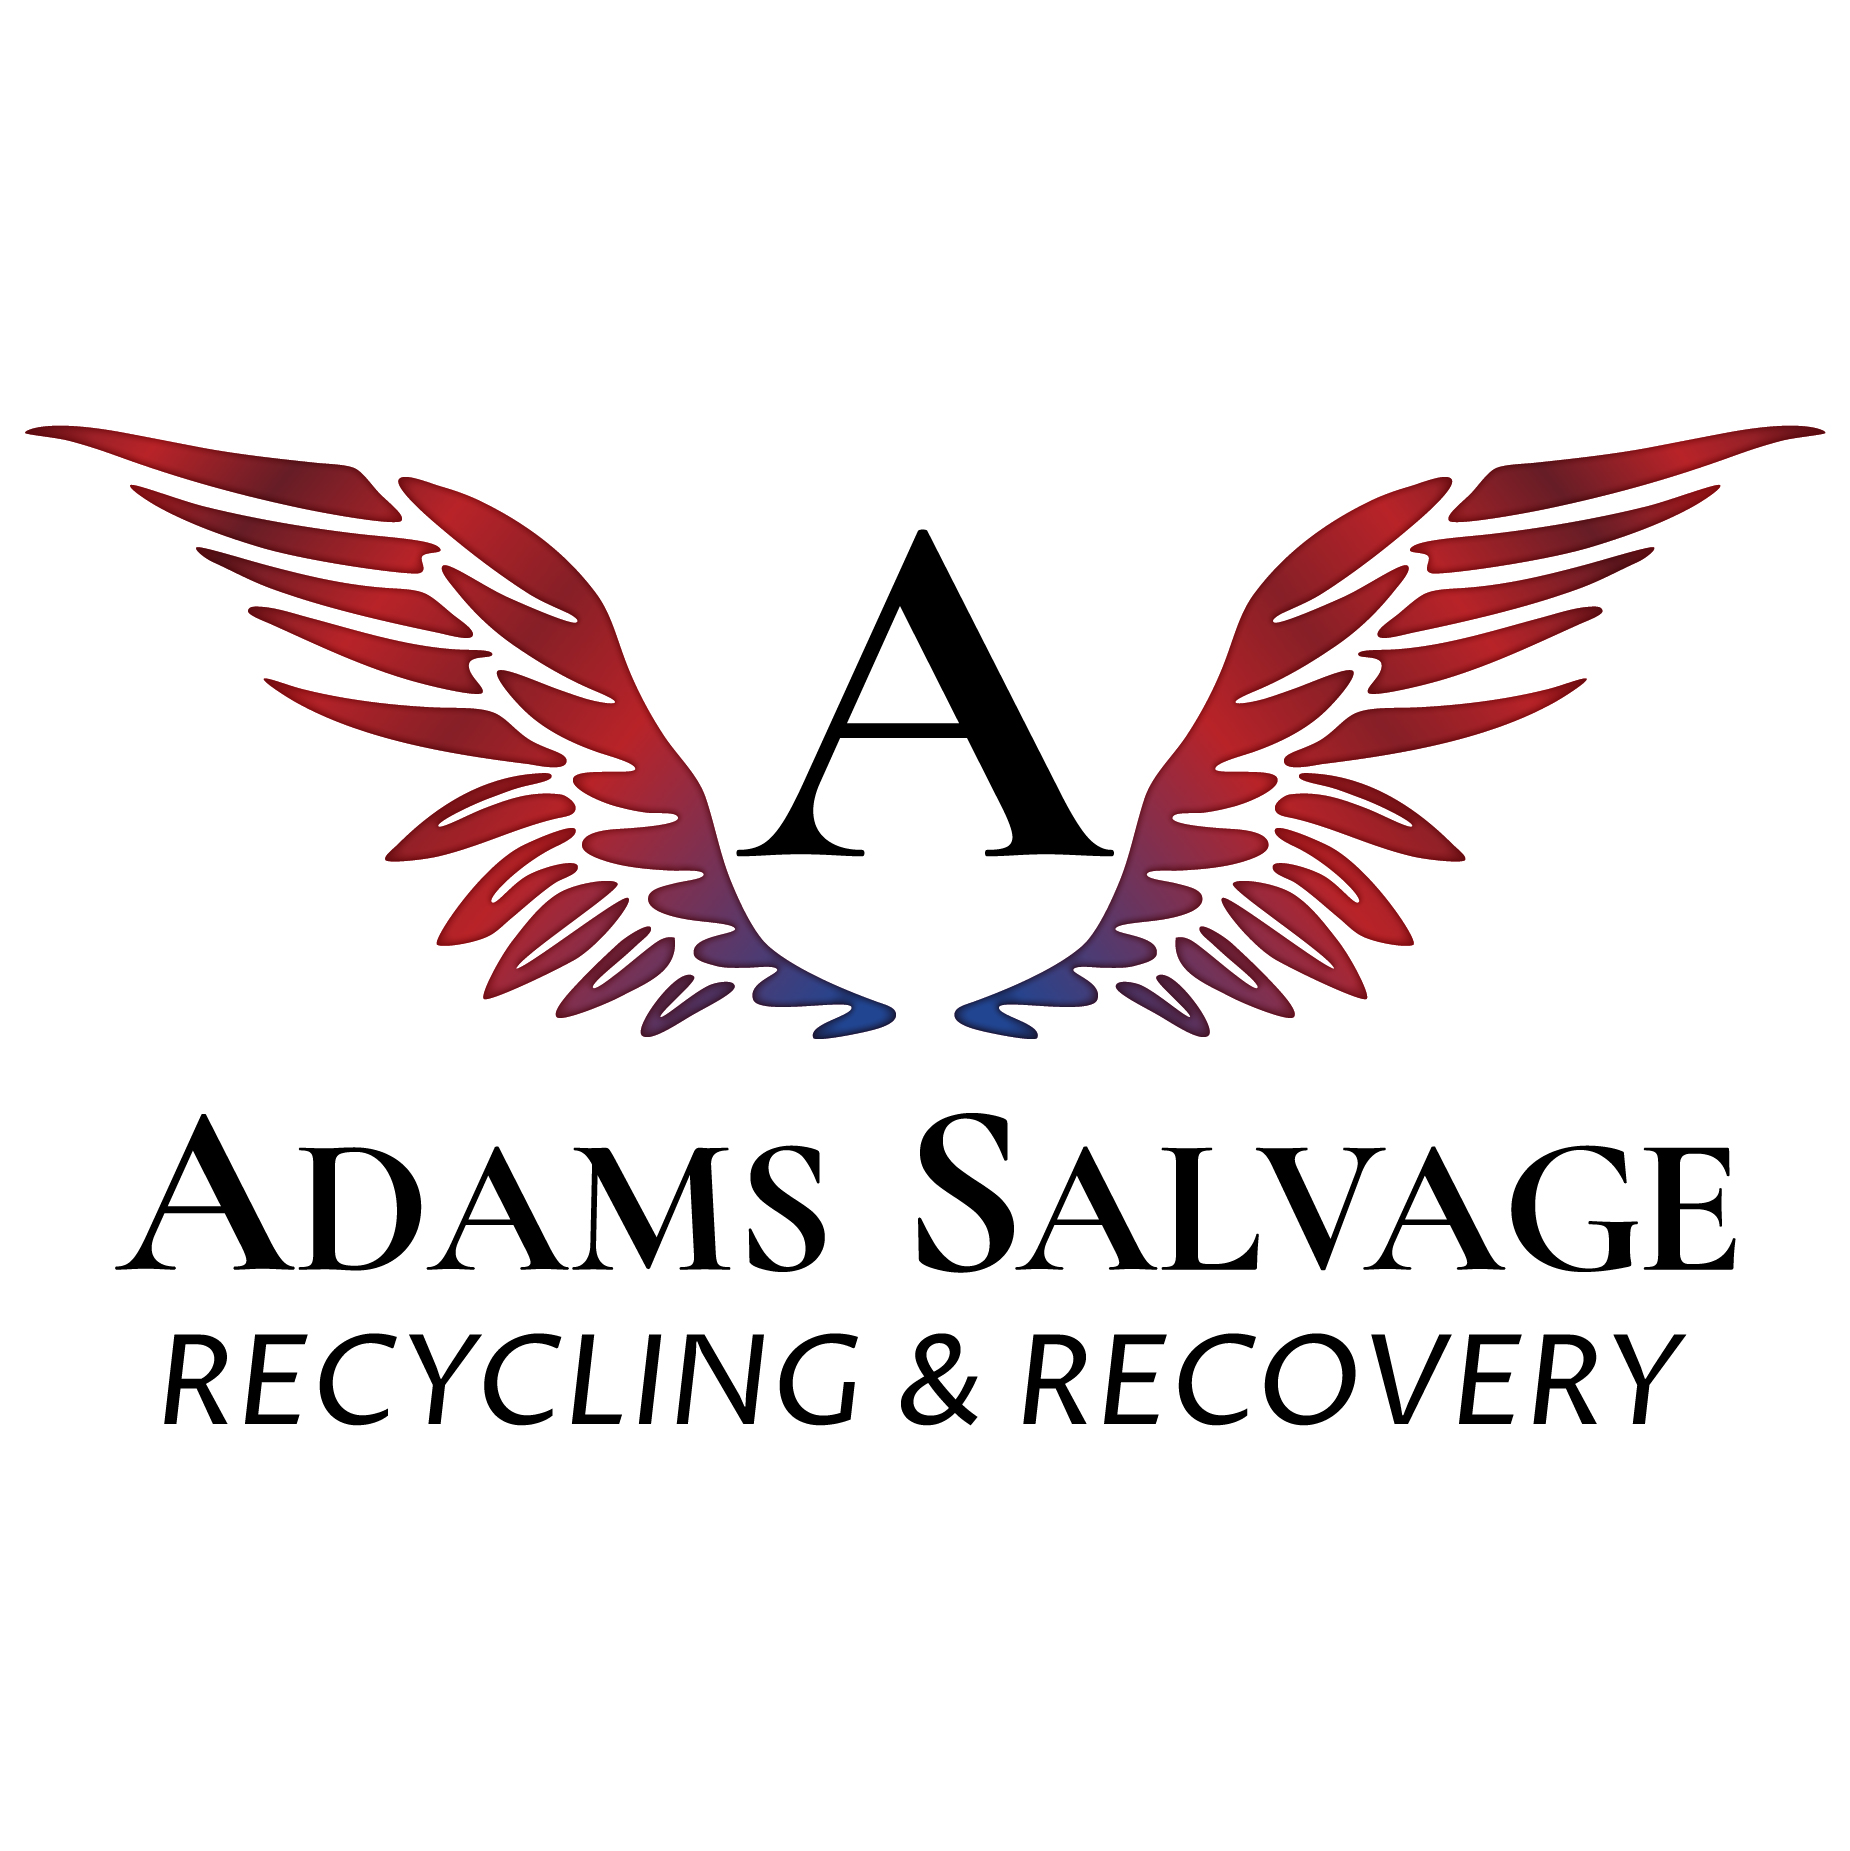 Adams Salvage